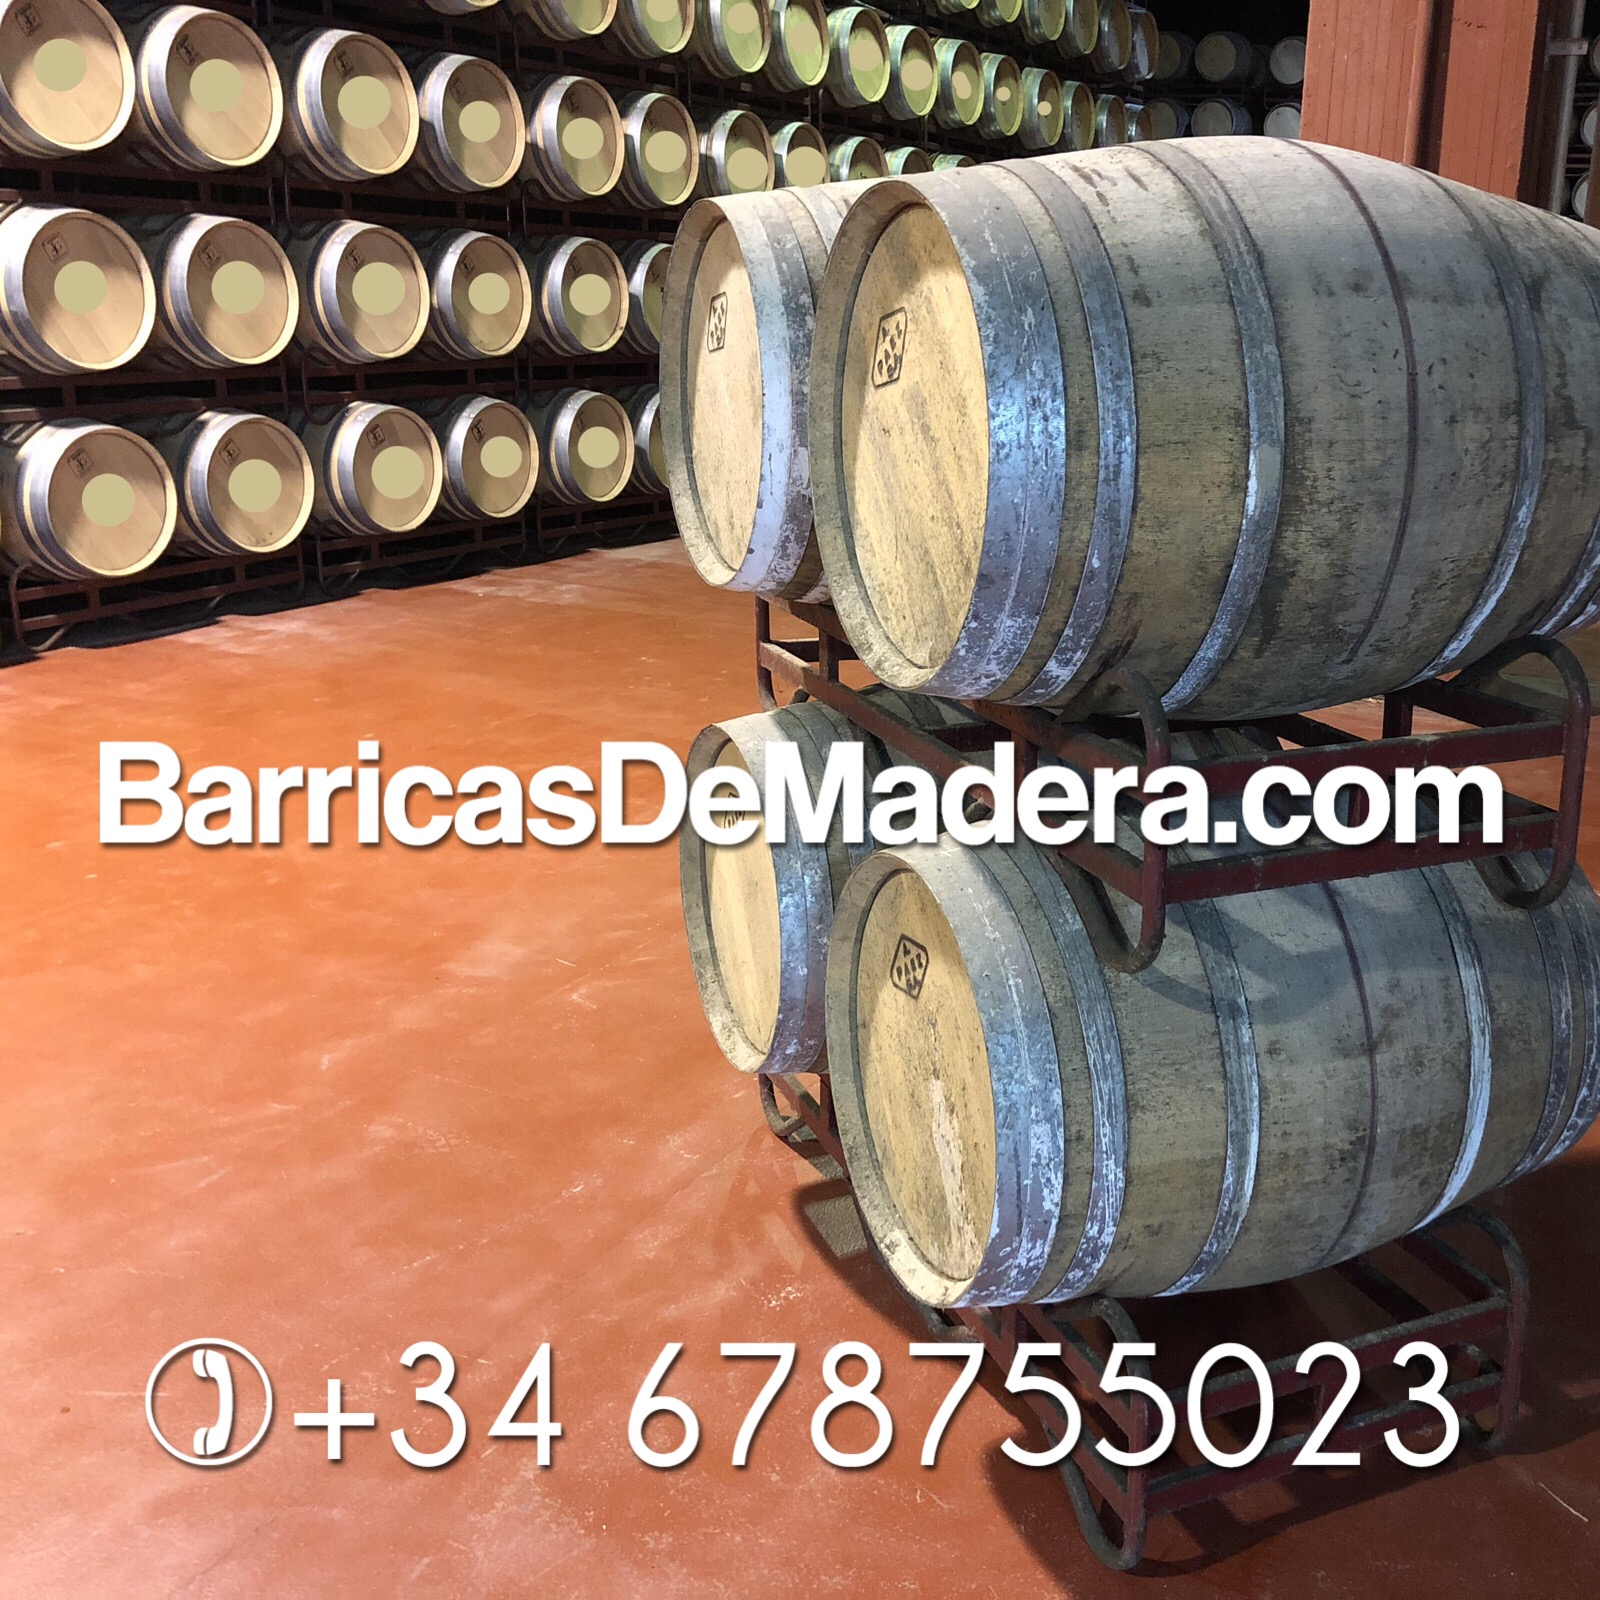 spain-used-wine-barrels-winery-cellar